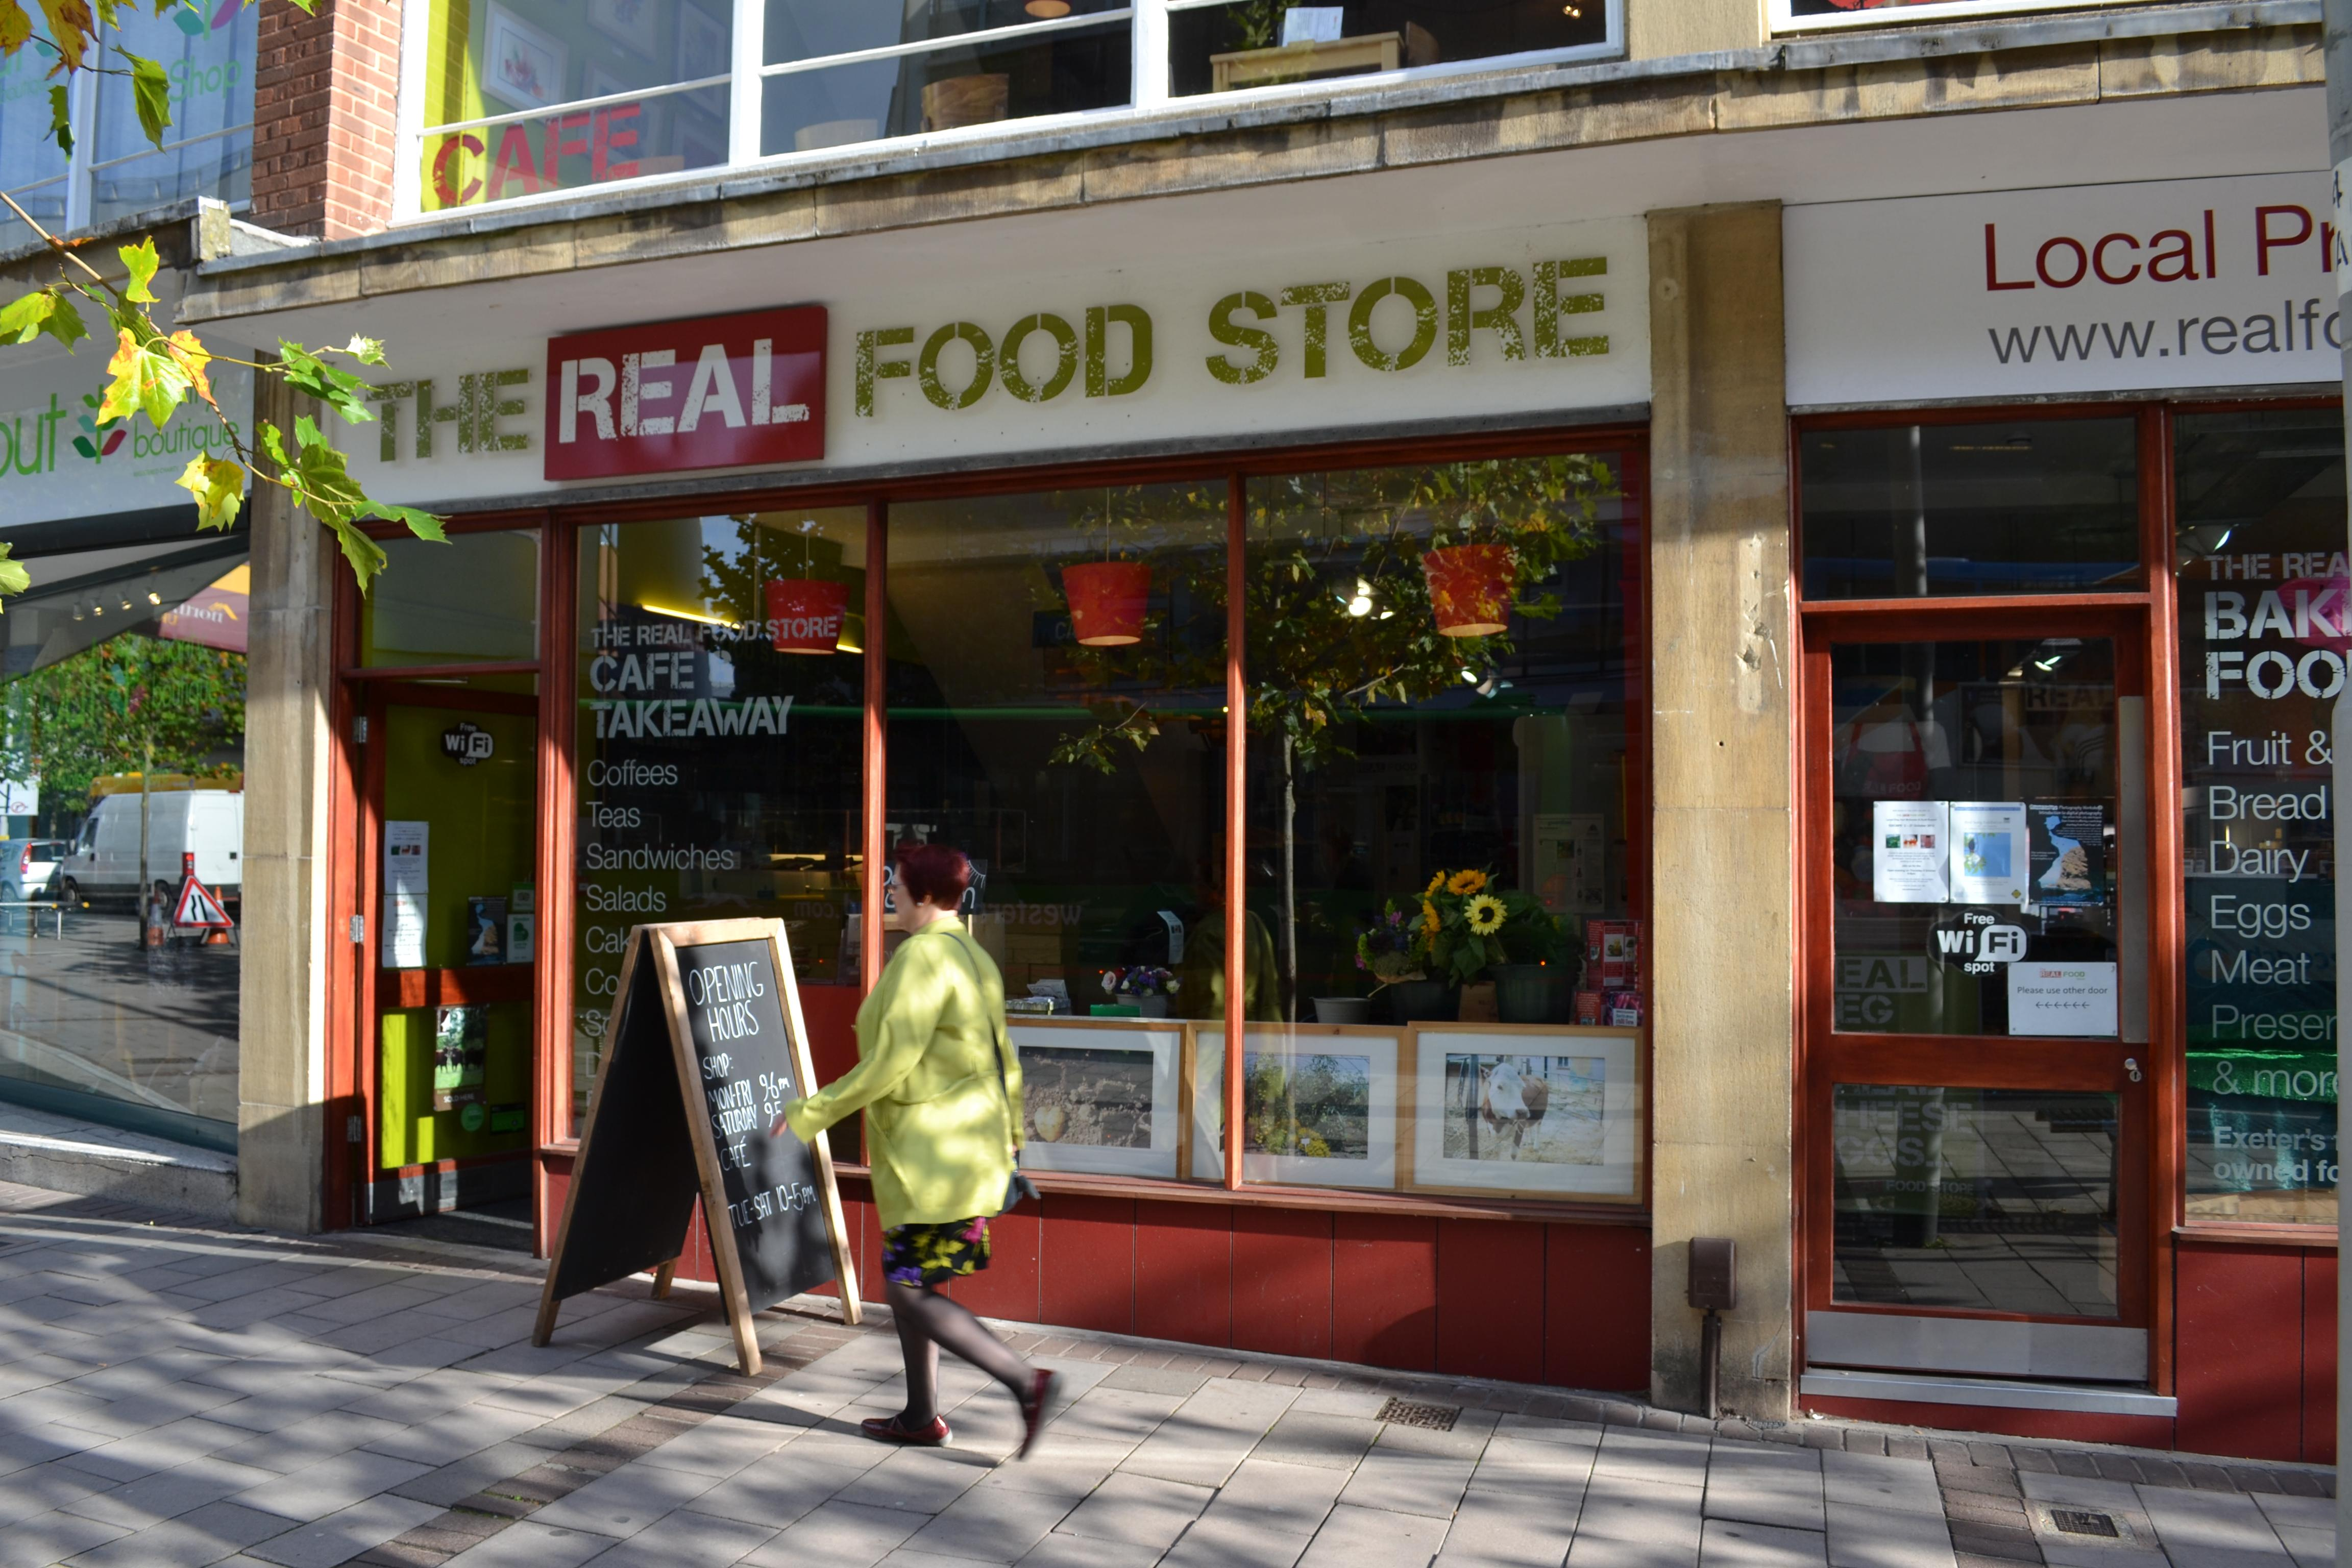 shop front view of Real Food Store